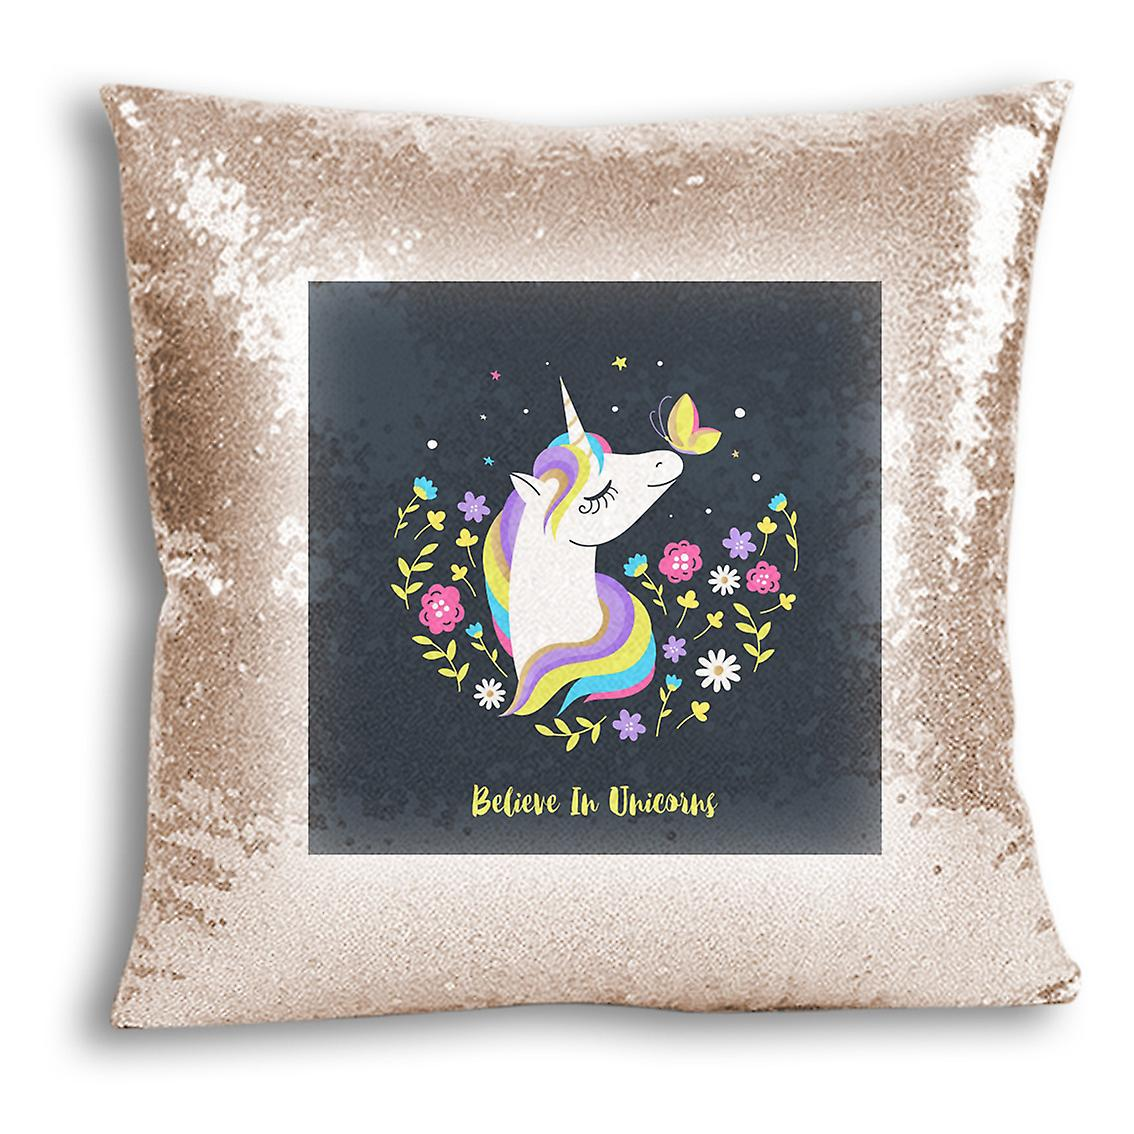 For Printed Sequin Inserted Home Design I 14 Champagne tronixsUnicorn CushionPillow Cover Decor With 8N0mvOnw